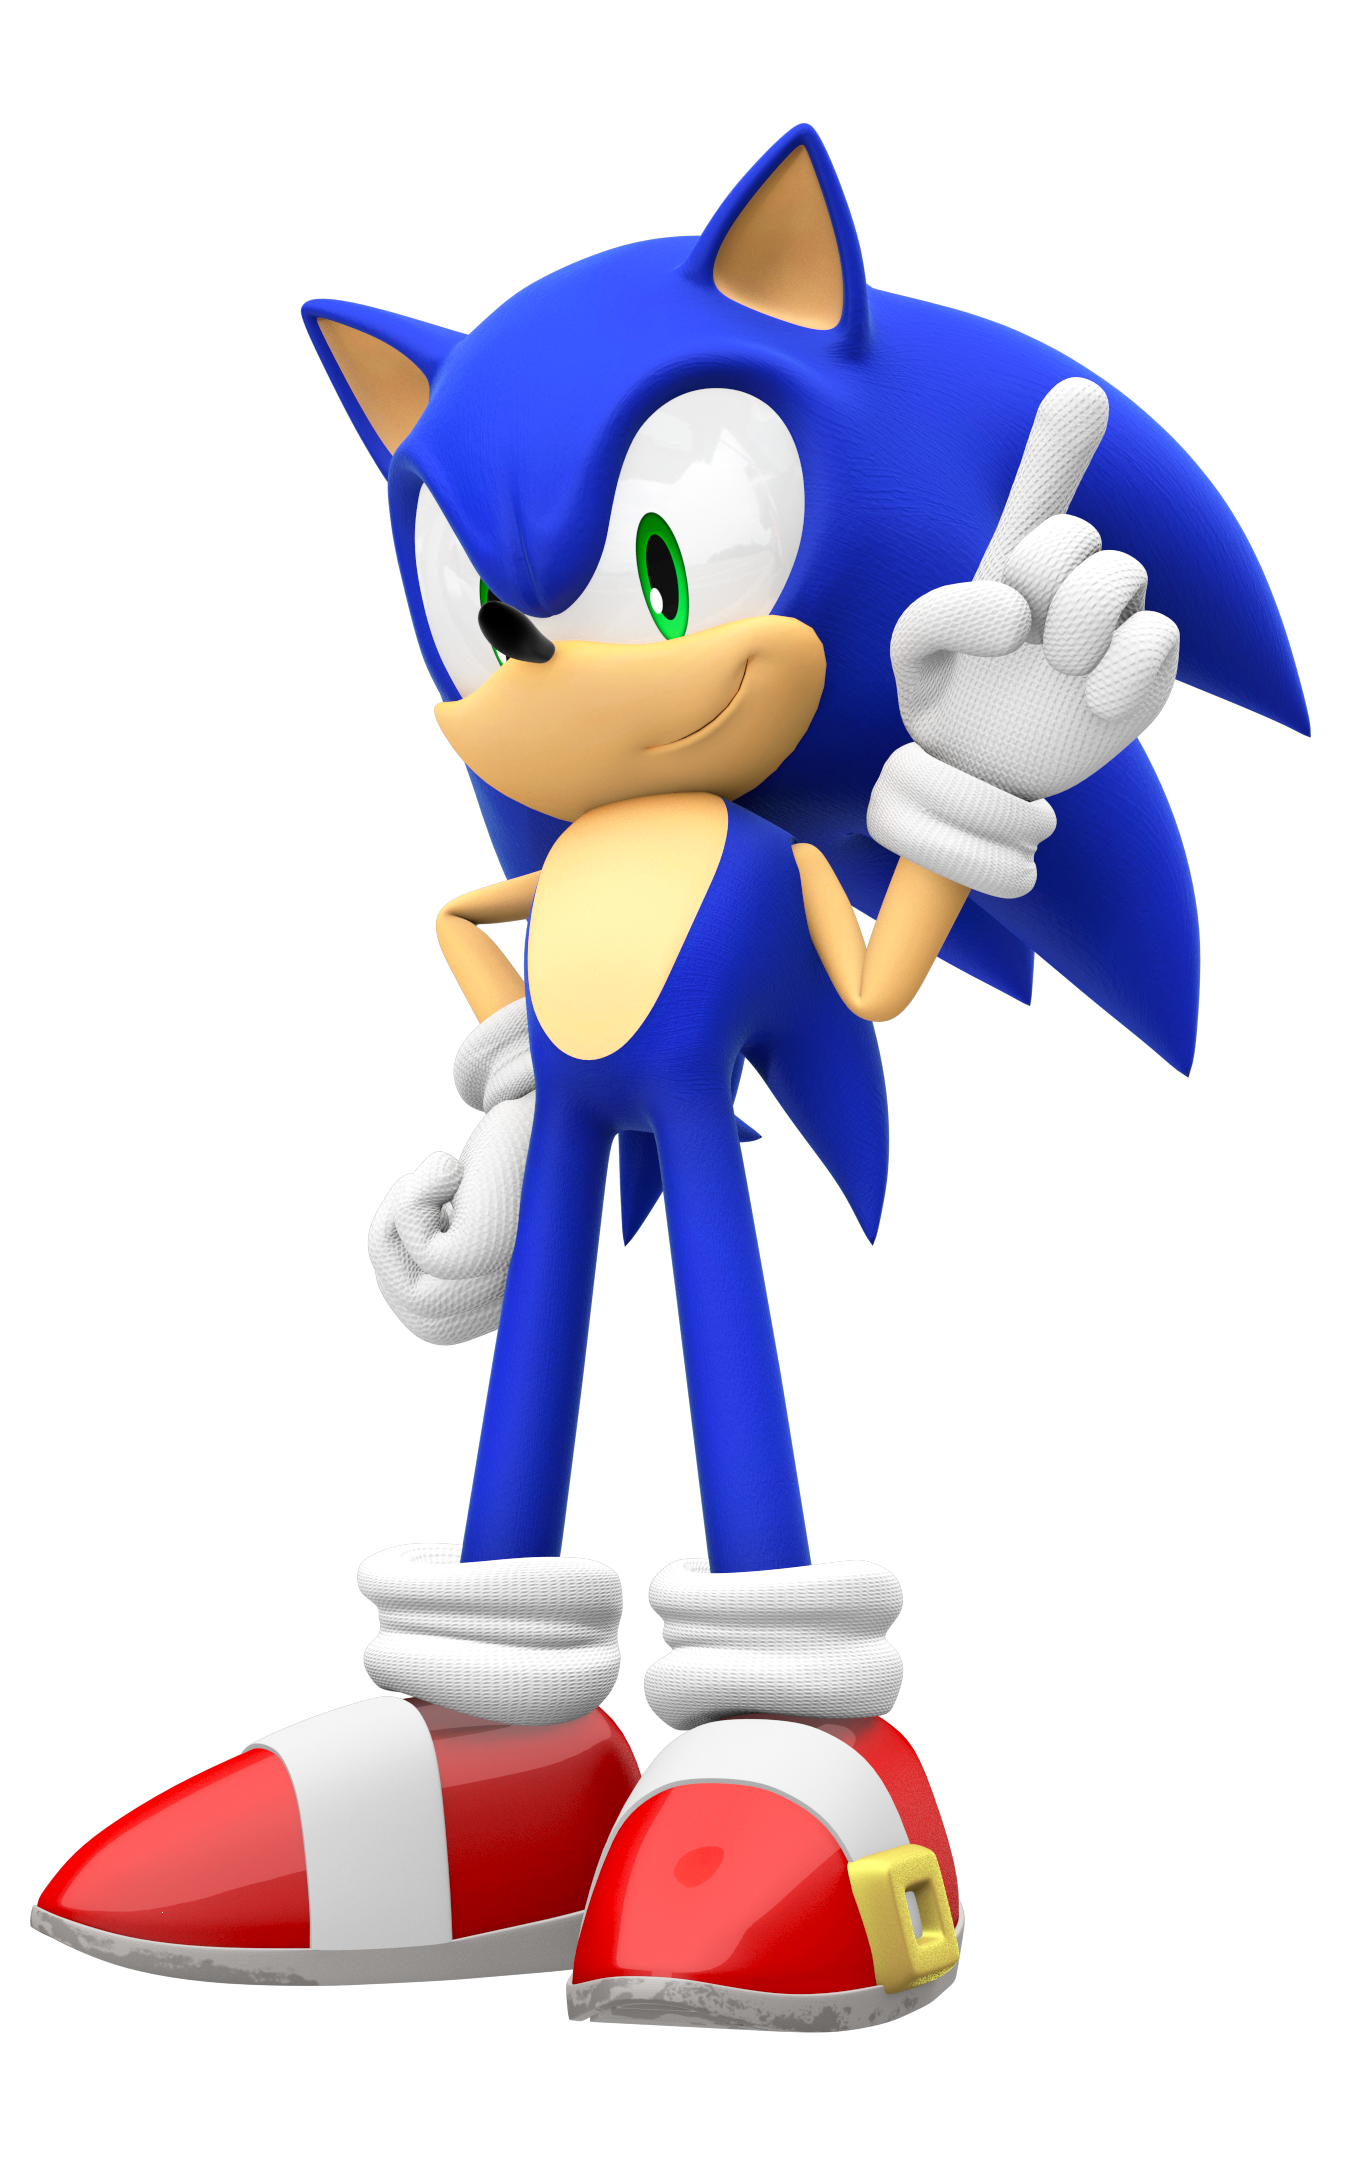 Sonic the Hedgehog Sonic Forces Sonic 3D Doctor Eggman Sega.